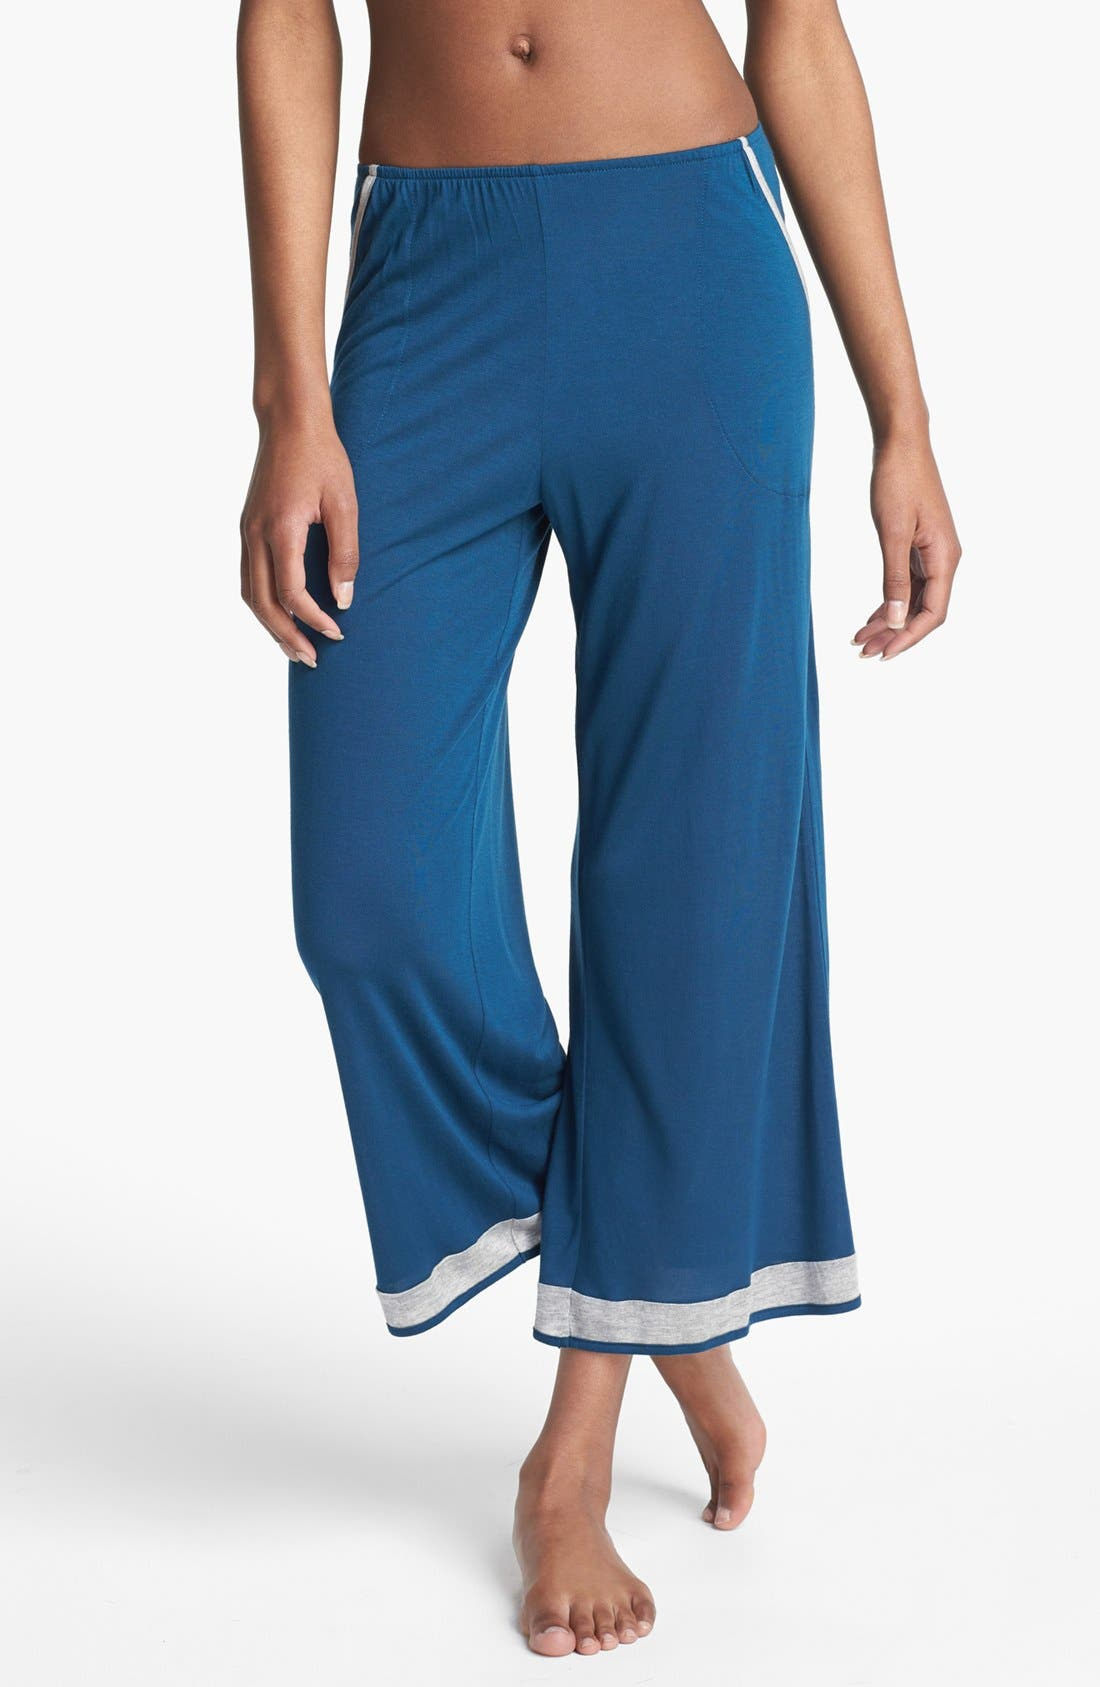 Main Image - Only Hearts 'Venice Beach' Crop Lounge Pants